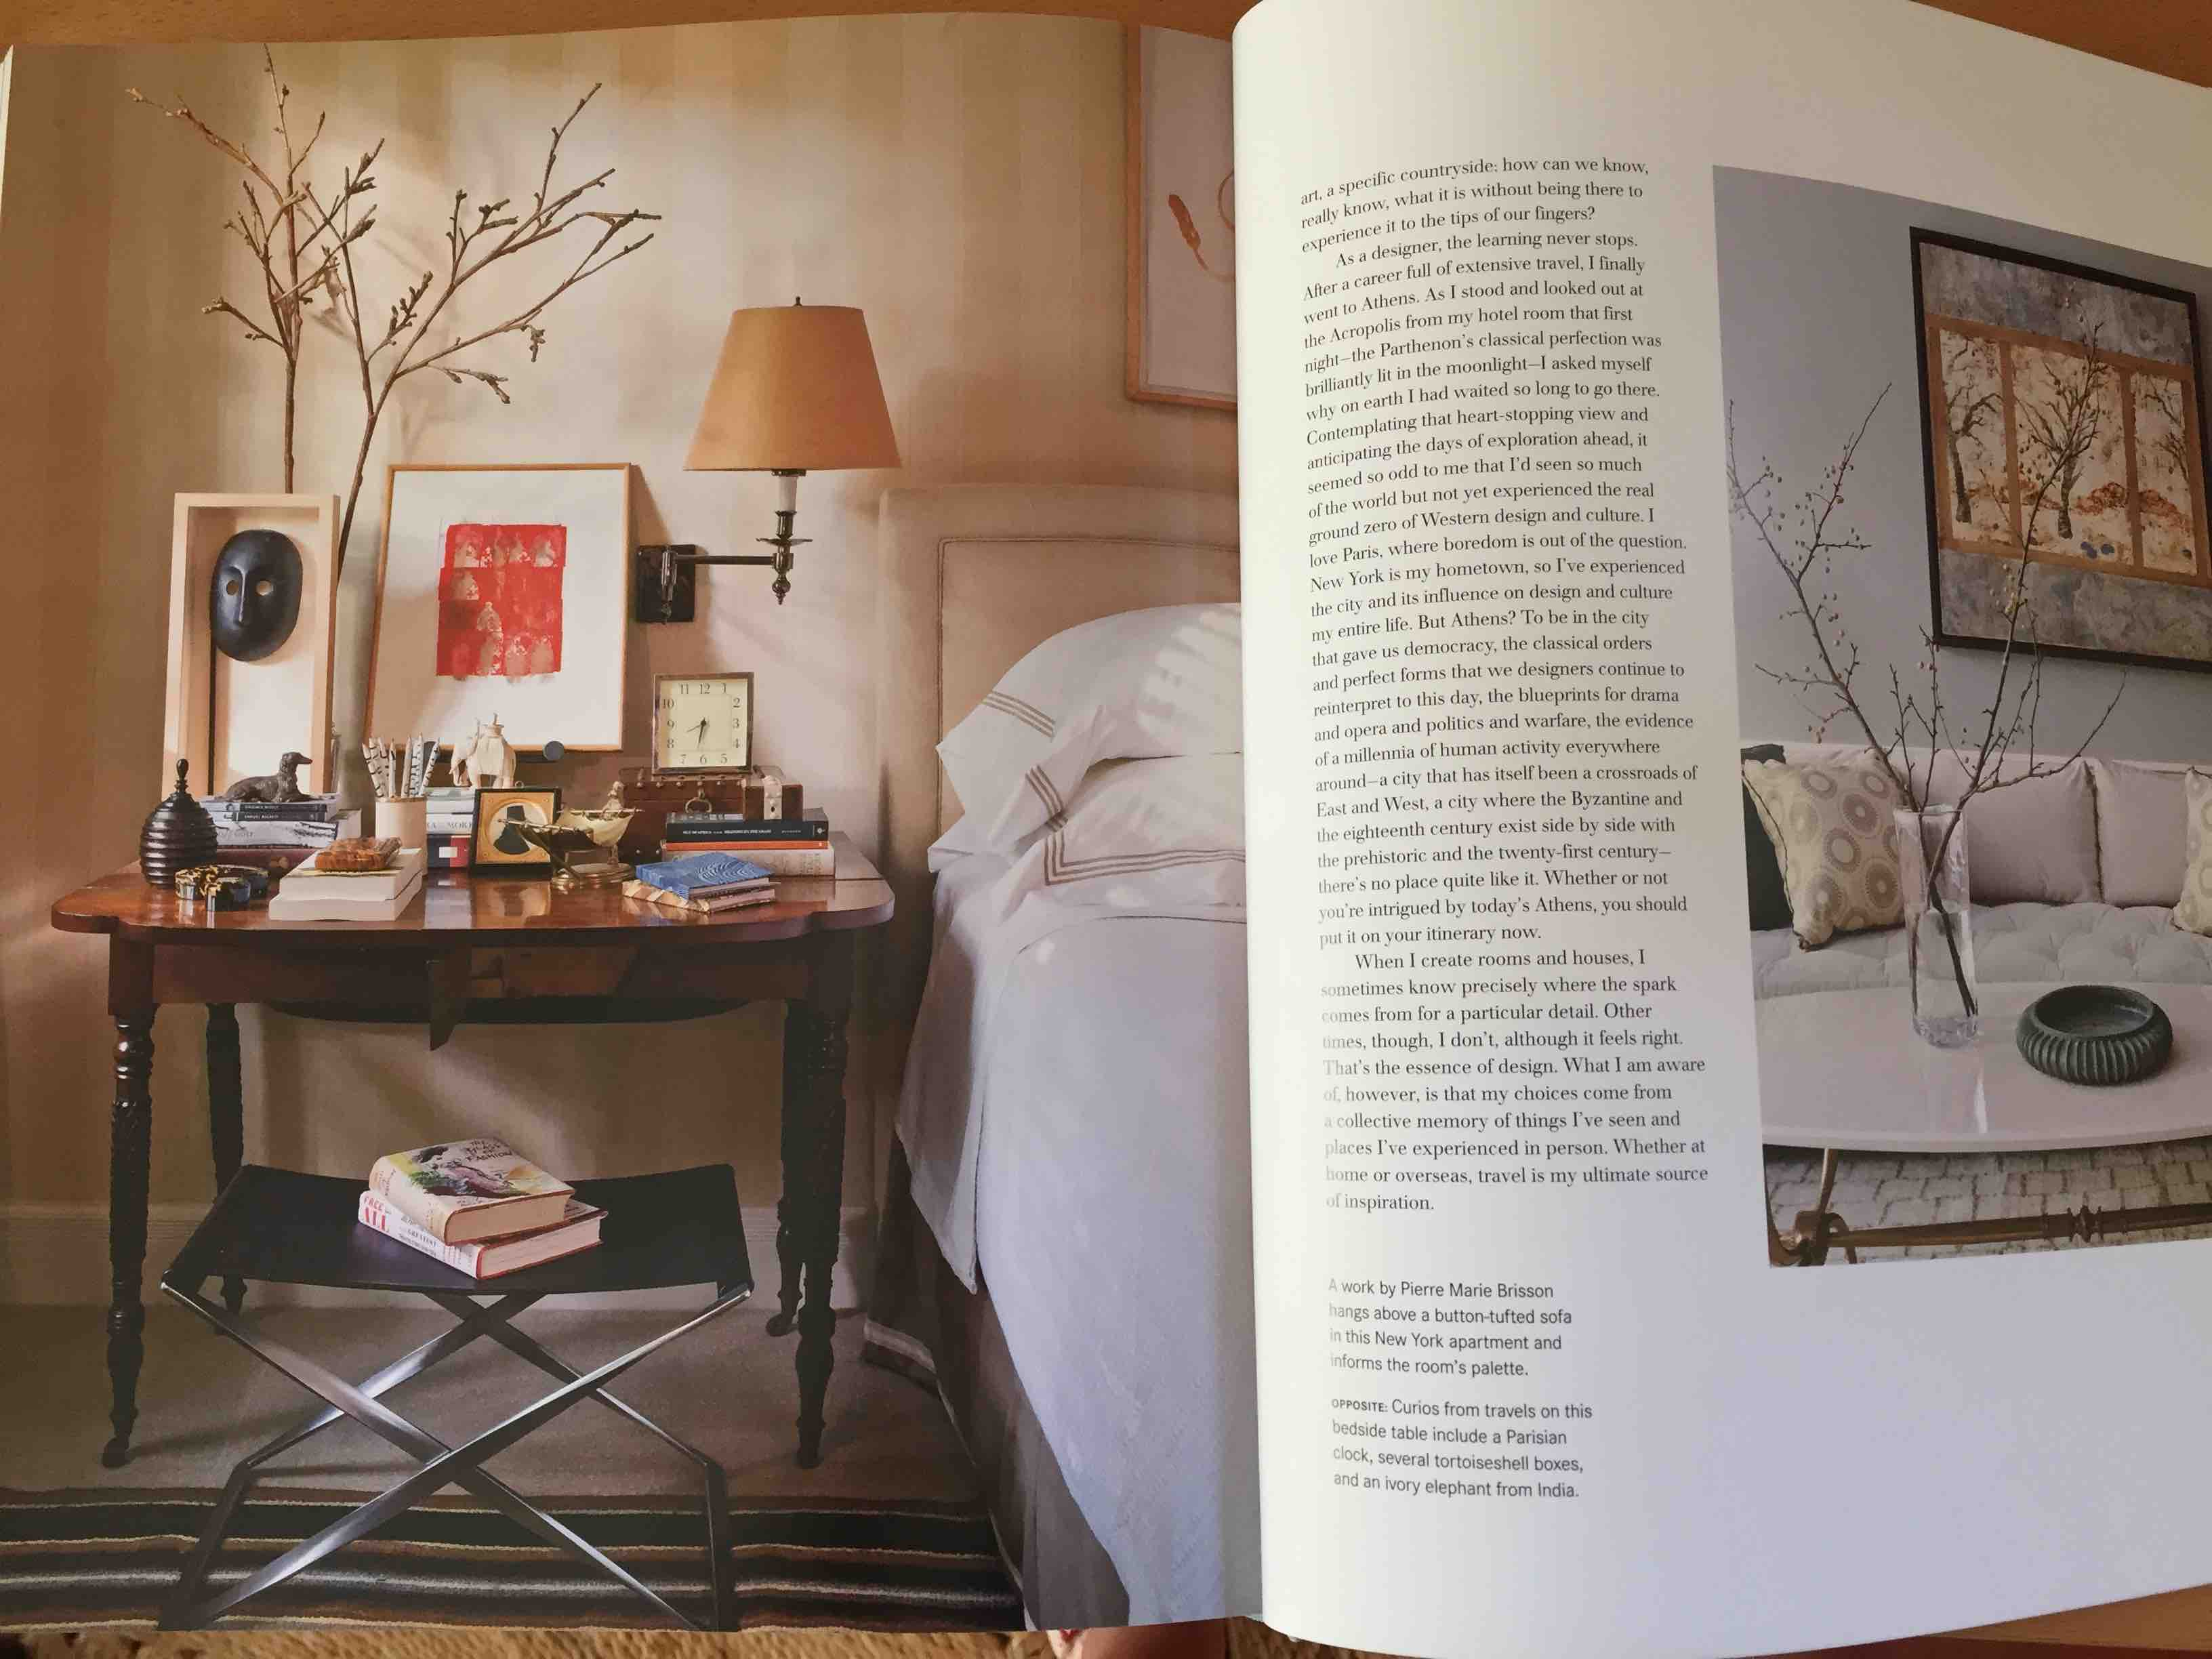 Interior-design-masterclass-carl-dellatore-books-travel